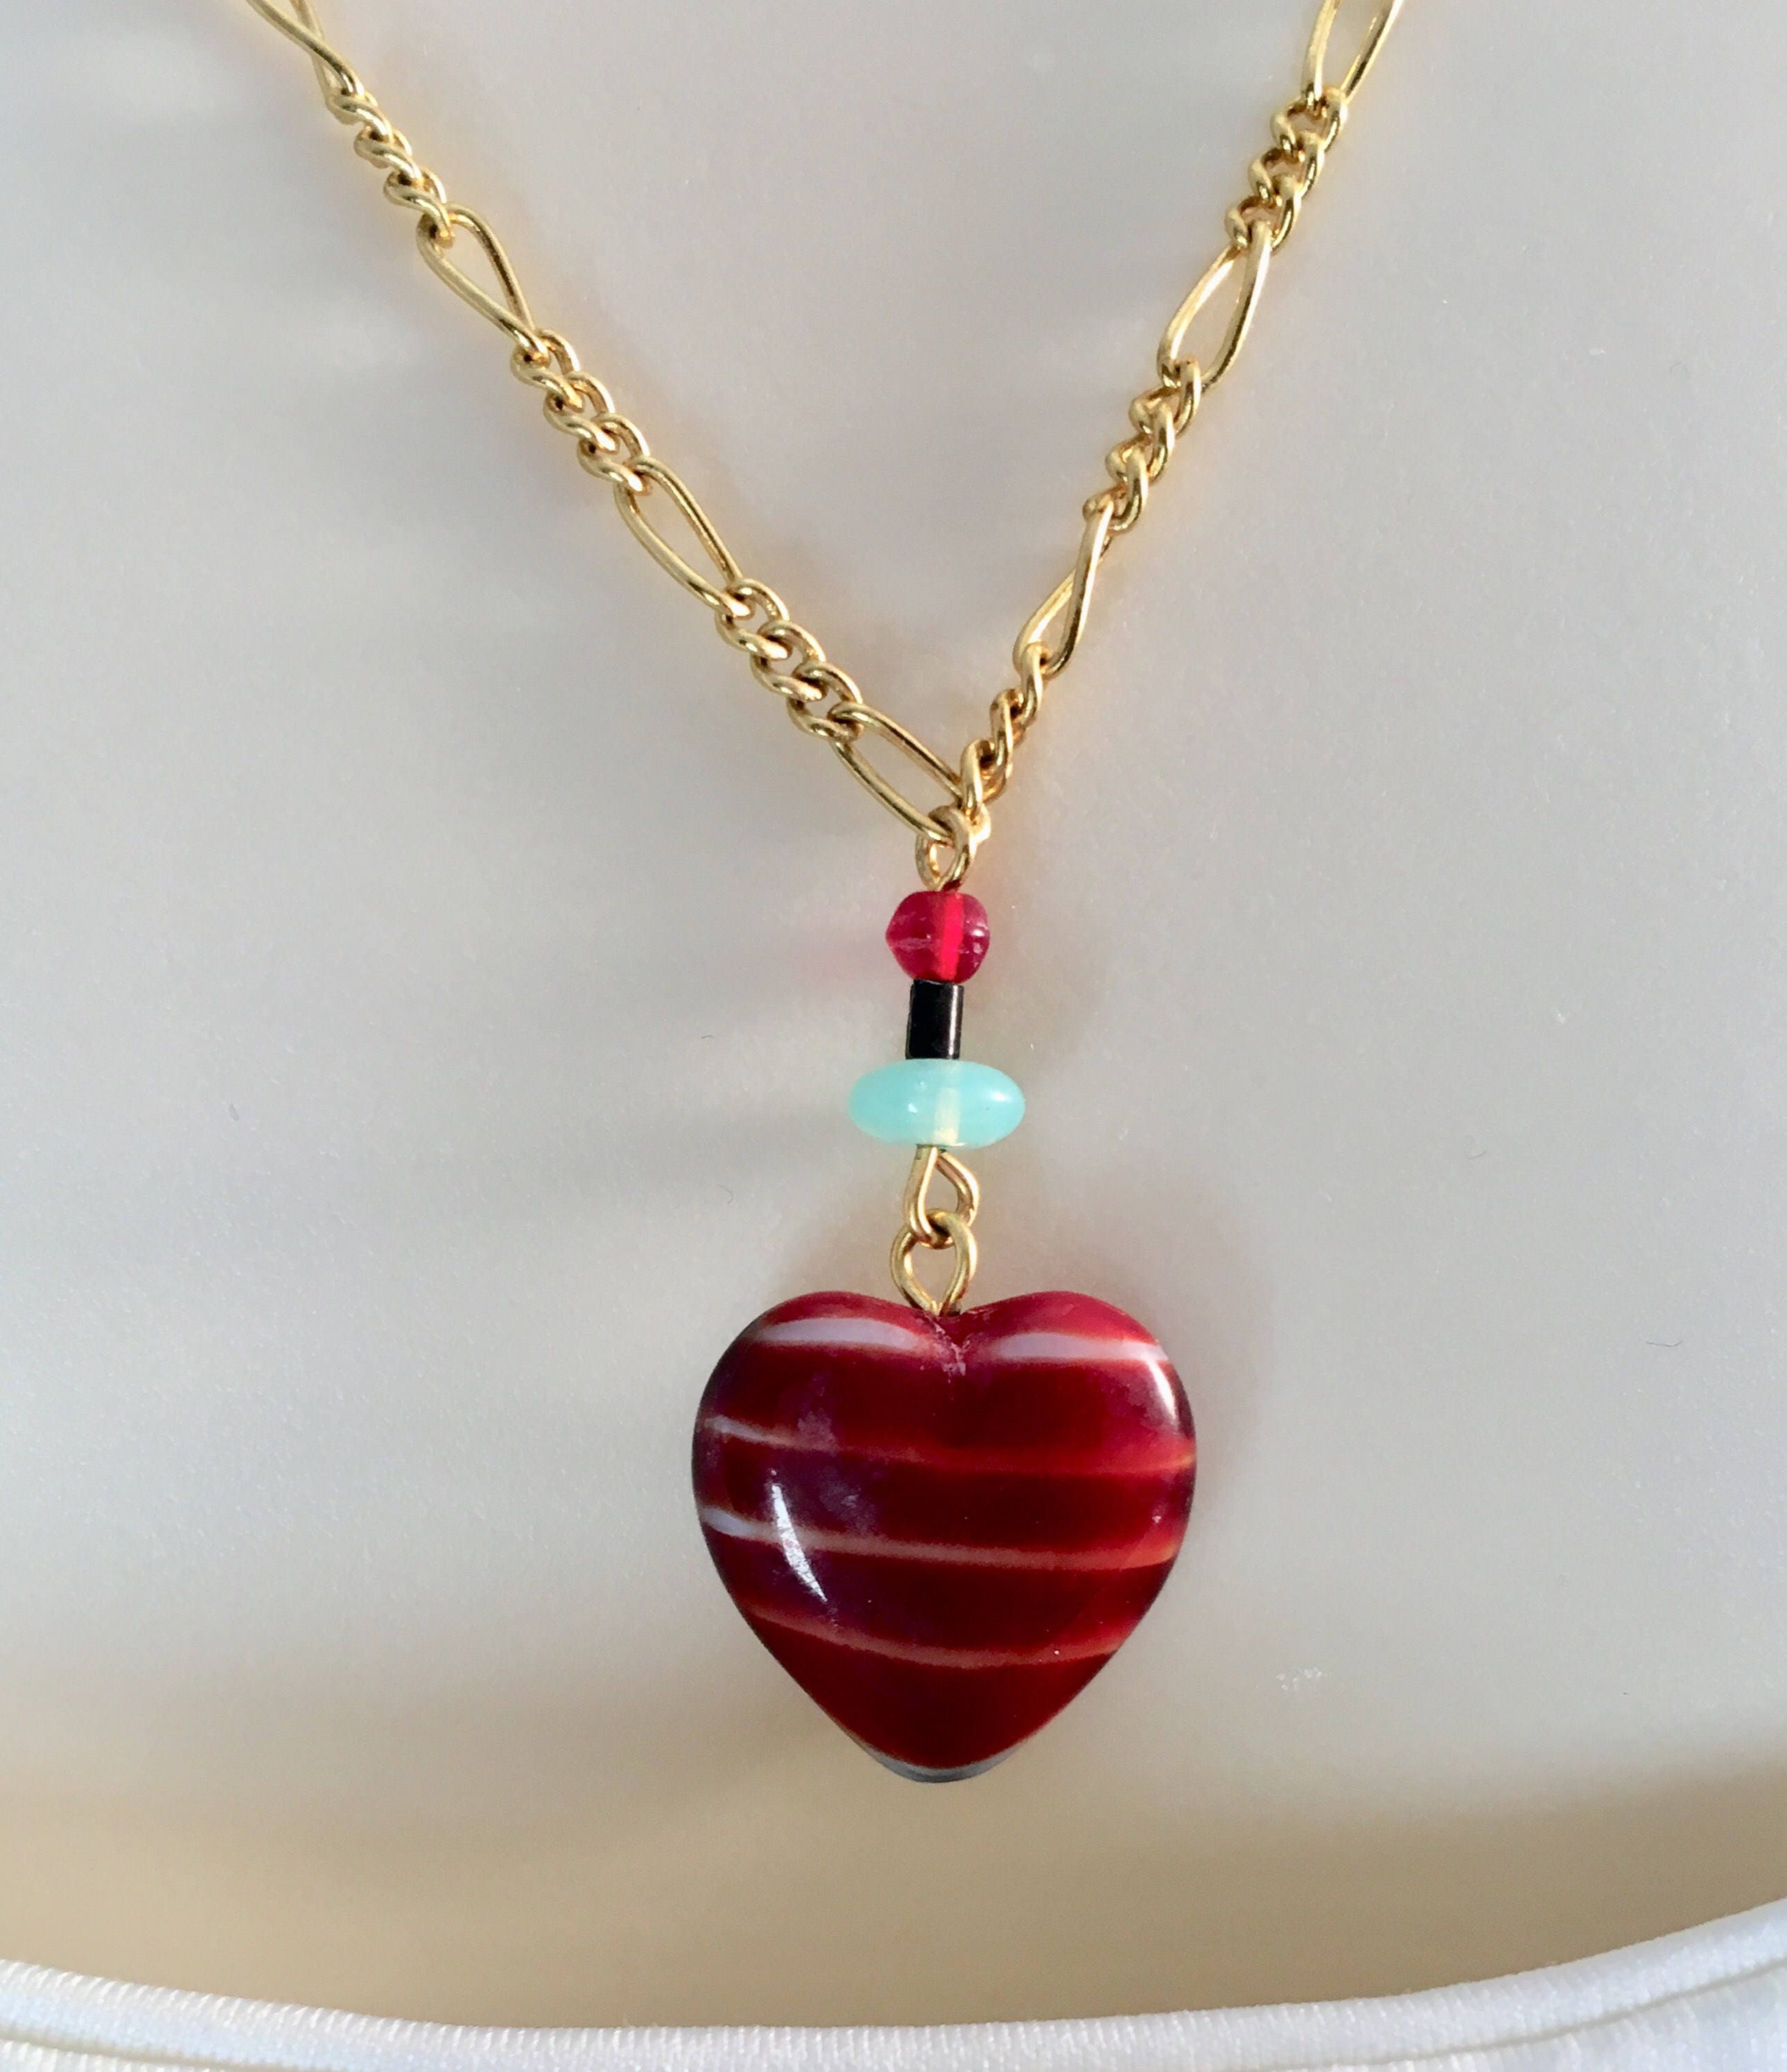 ruby pendant necklace jewelry brand gilt pave heart by red product jennifer meyer orig